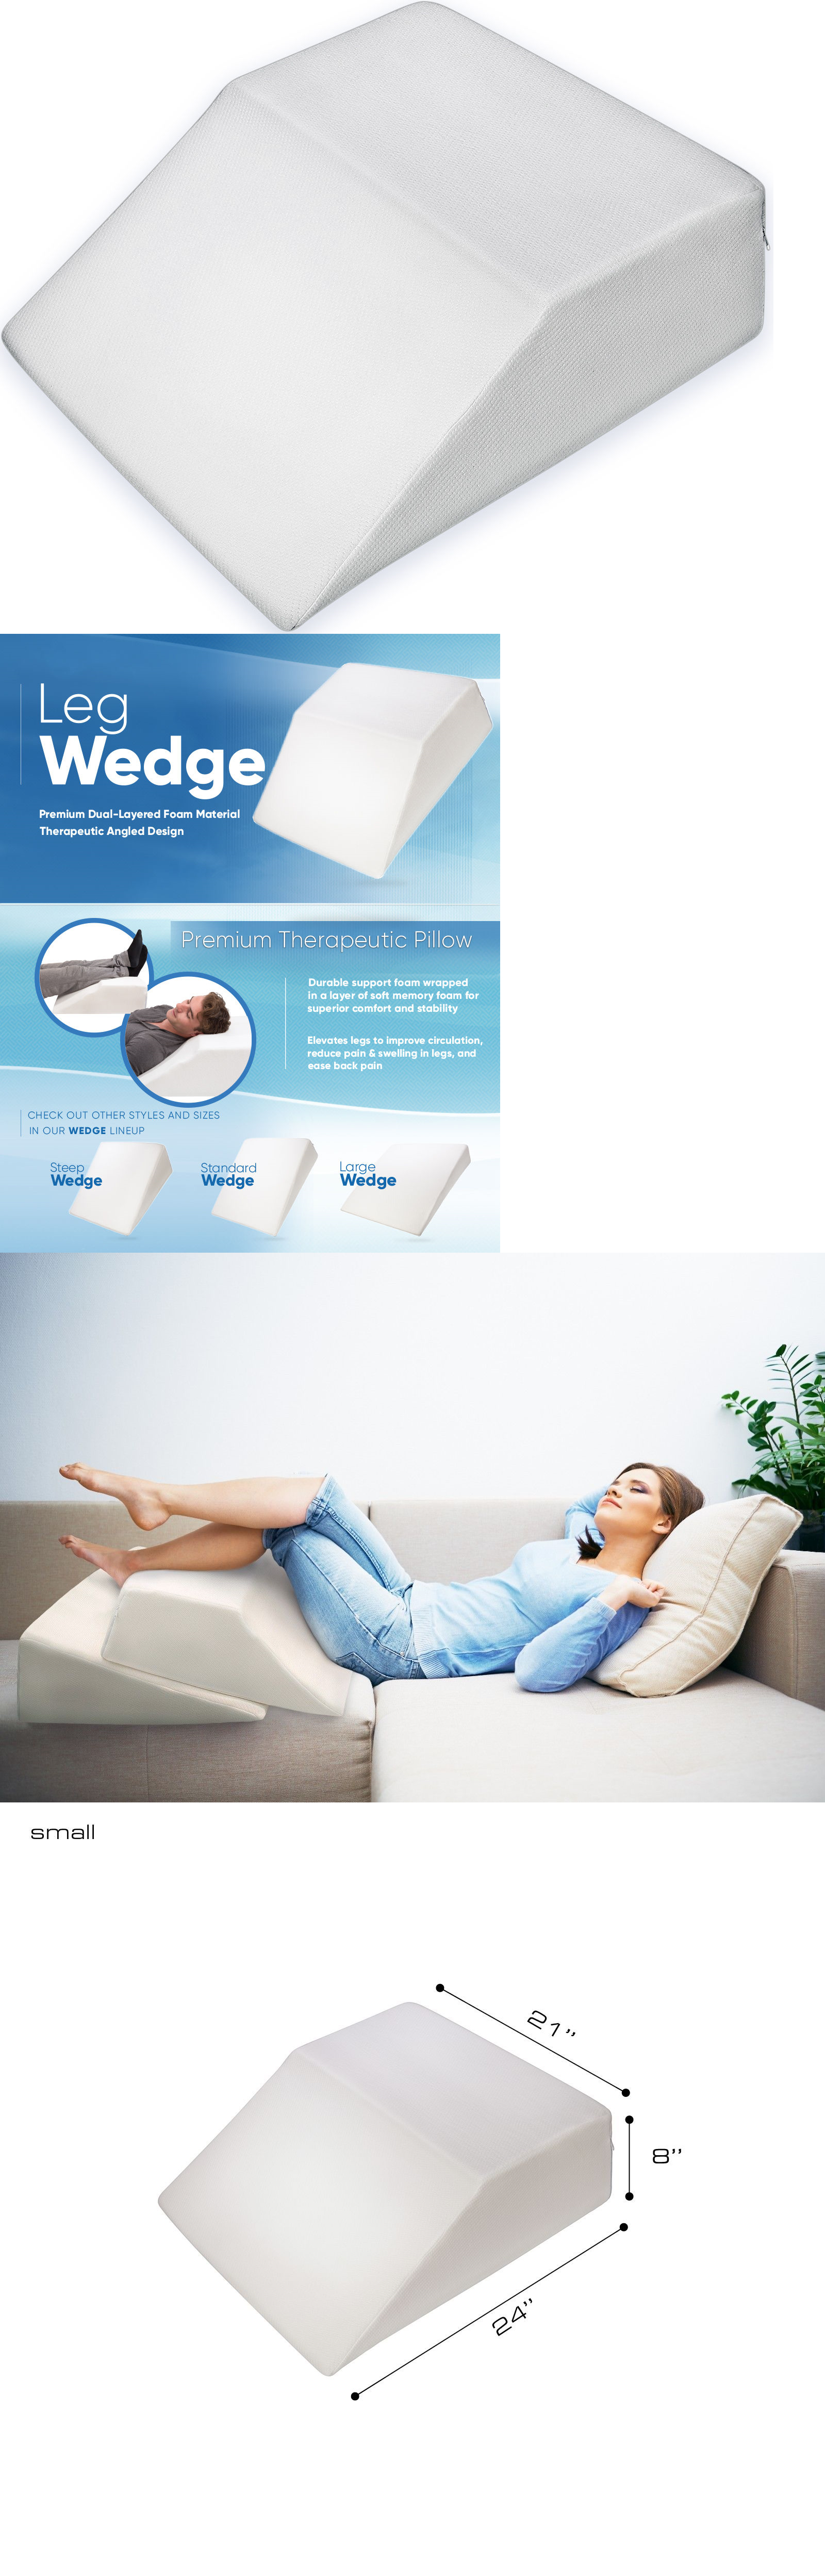 Bed wedge for legs - Wedges And Bed Positioners Pharmedoc Leg Bed Wedge Pillow W Cover Acid Reflux Pain